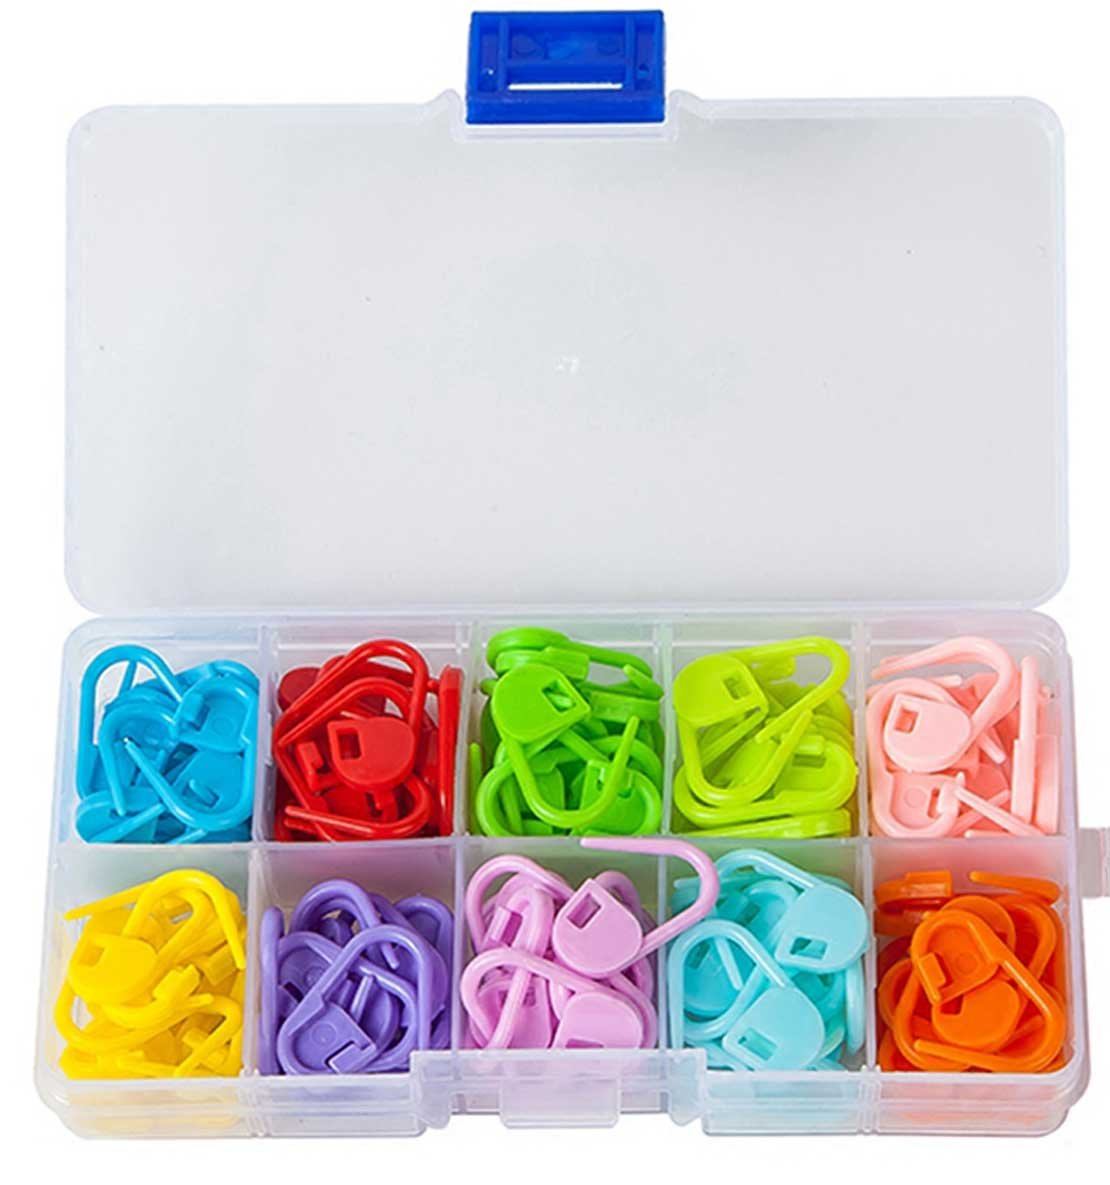 Knitting Stitch Markers - LeBeila Split Locking Knit Stitch Counter Needle Clips Supplies, 120 Pieces Colorful Plastic Crochet Marker Yarn Count Rings Mini Safety Pins Accessories (120Pcs, 10Colors) LBL-stitch-11122